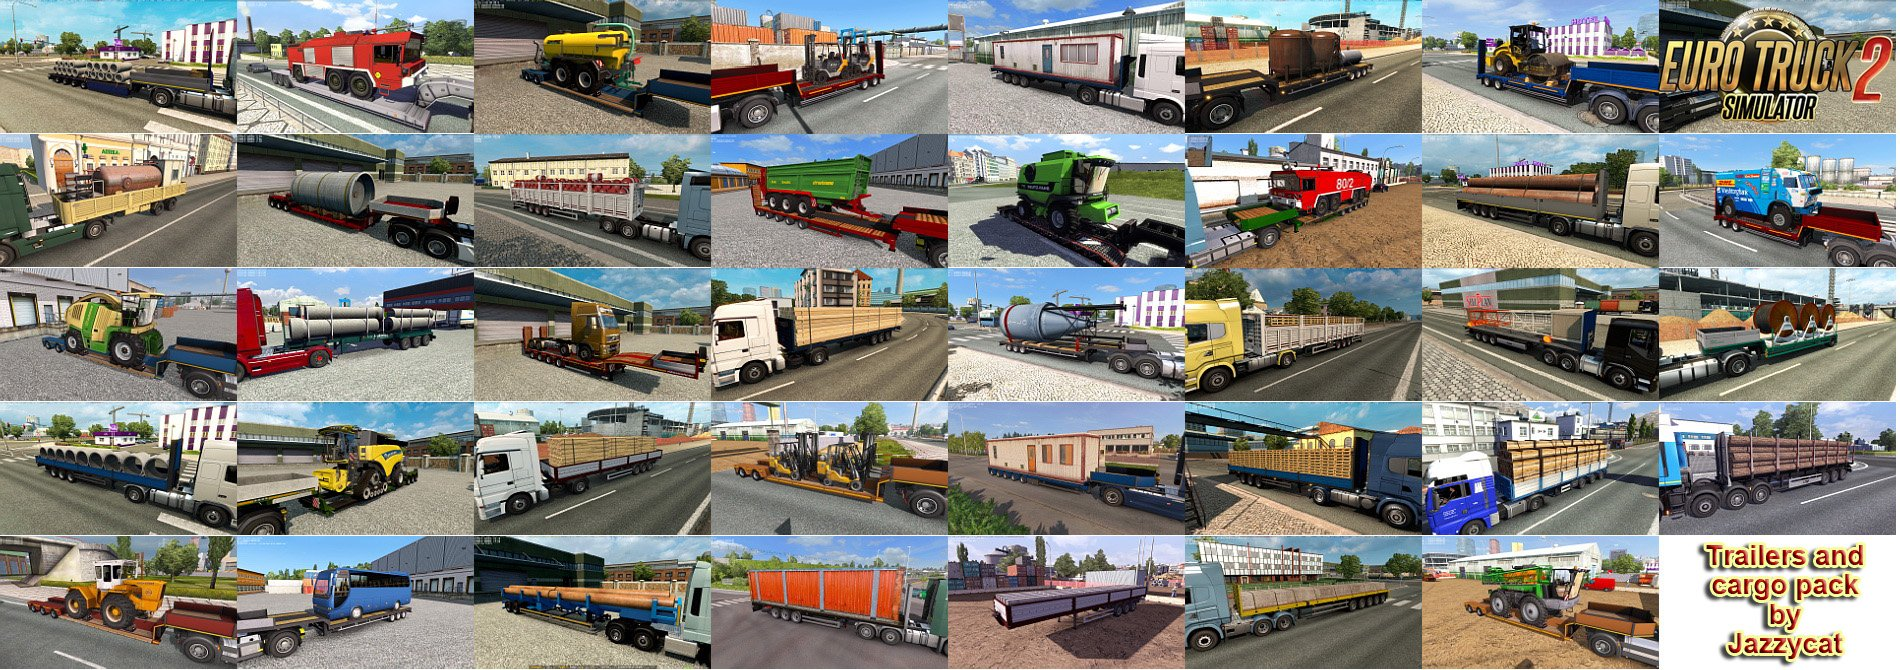 Trailers and Cargo Pack v7.7 by Jazzycat